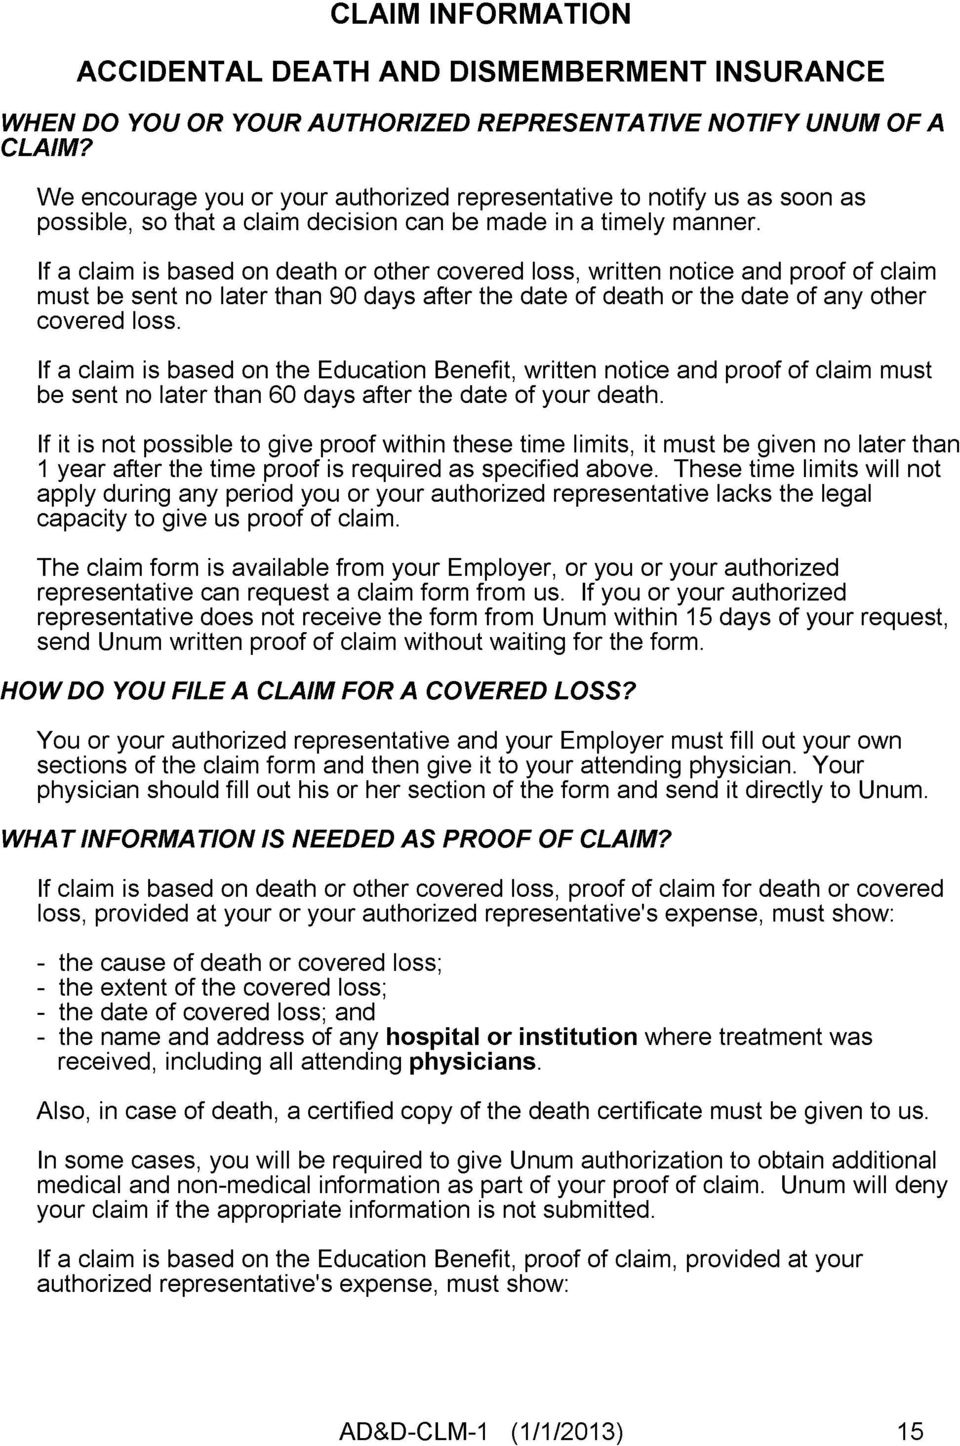 If a claim is based on death or other covered loss, written notice and proof of claim must be sent no later than 90 days after the date of death or the date of any other covered loss.